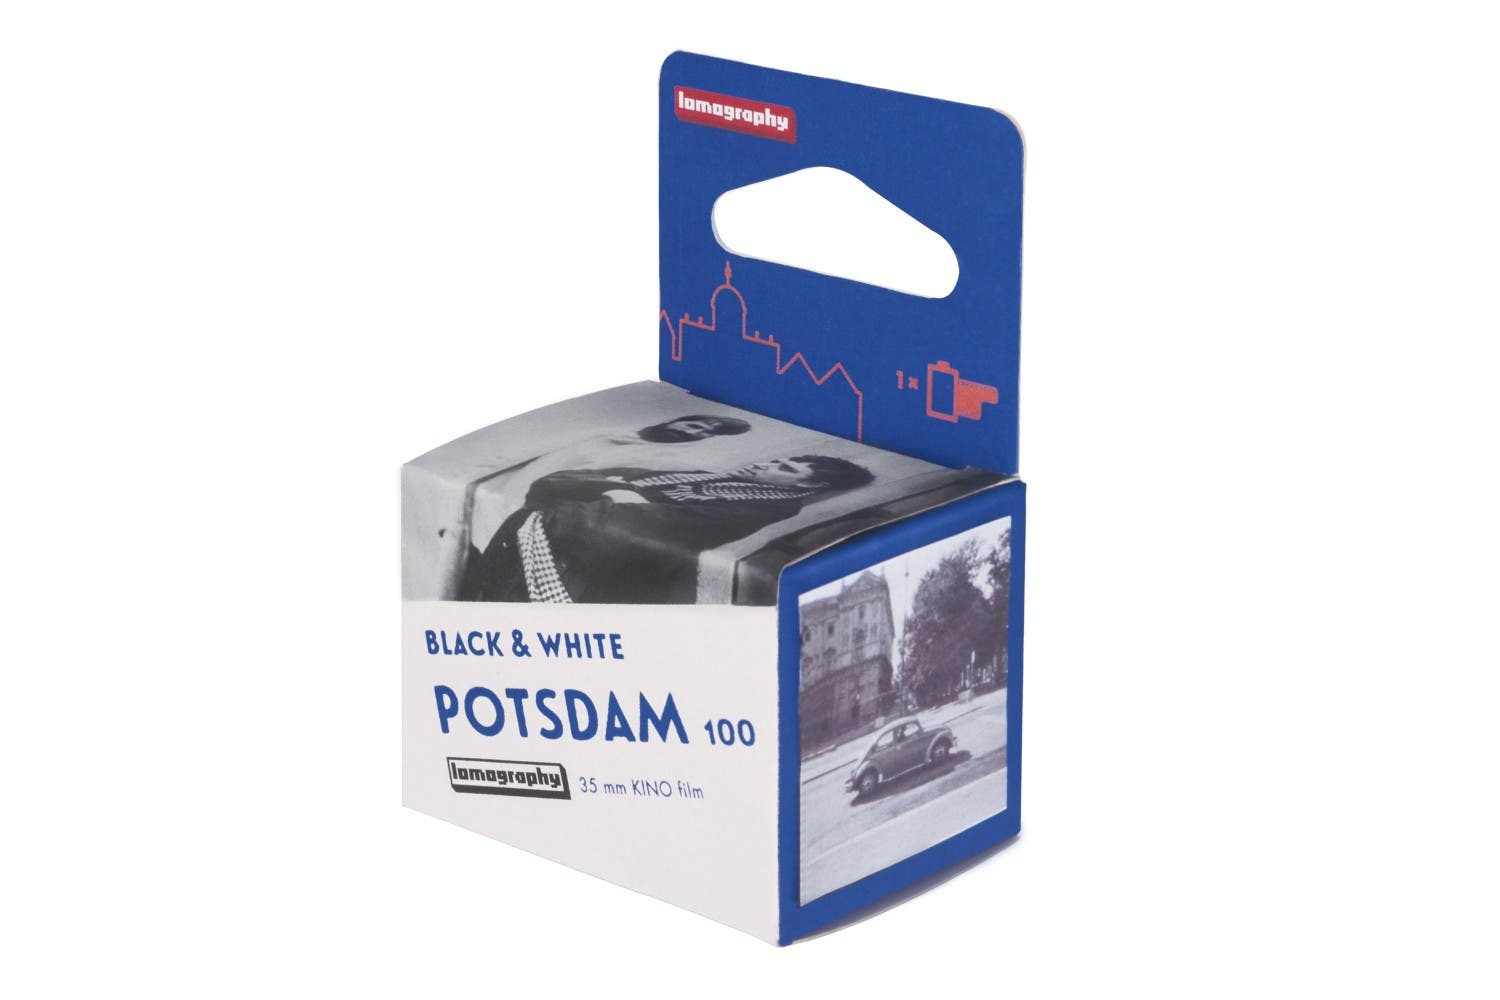 Lomography Potsdam Kino Is its Latest ISO 100 Black and White Film